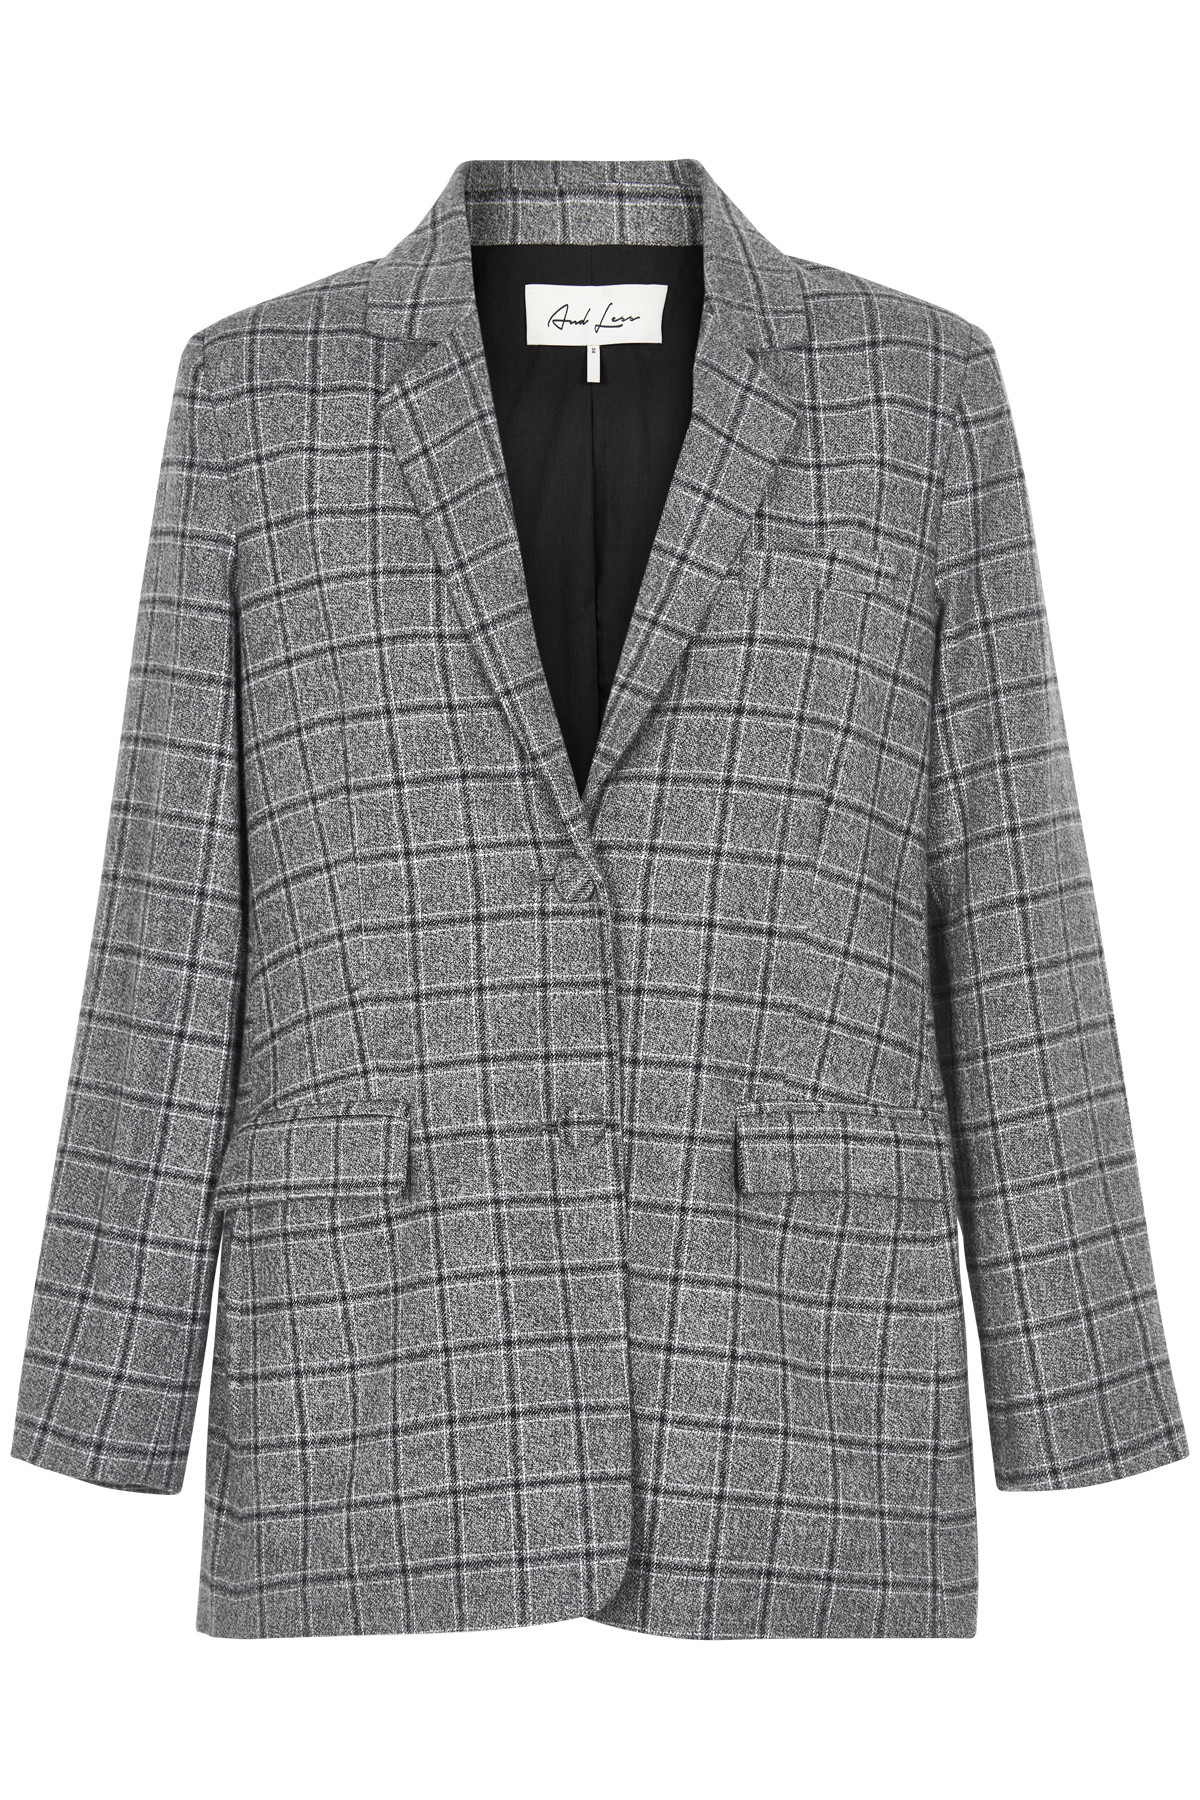 Image of   AND LESS CHARLOTI BLAZER 5119902 (Caviar Check, 42)